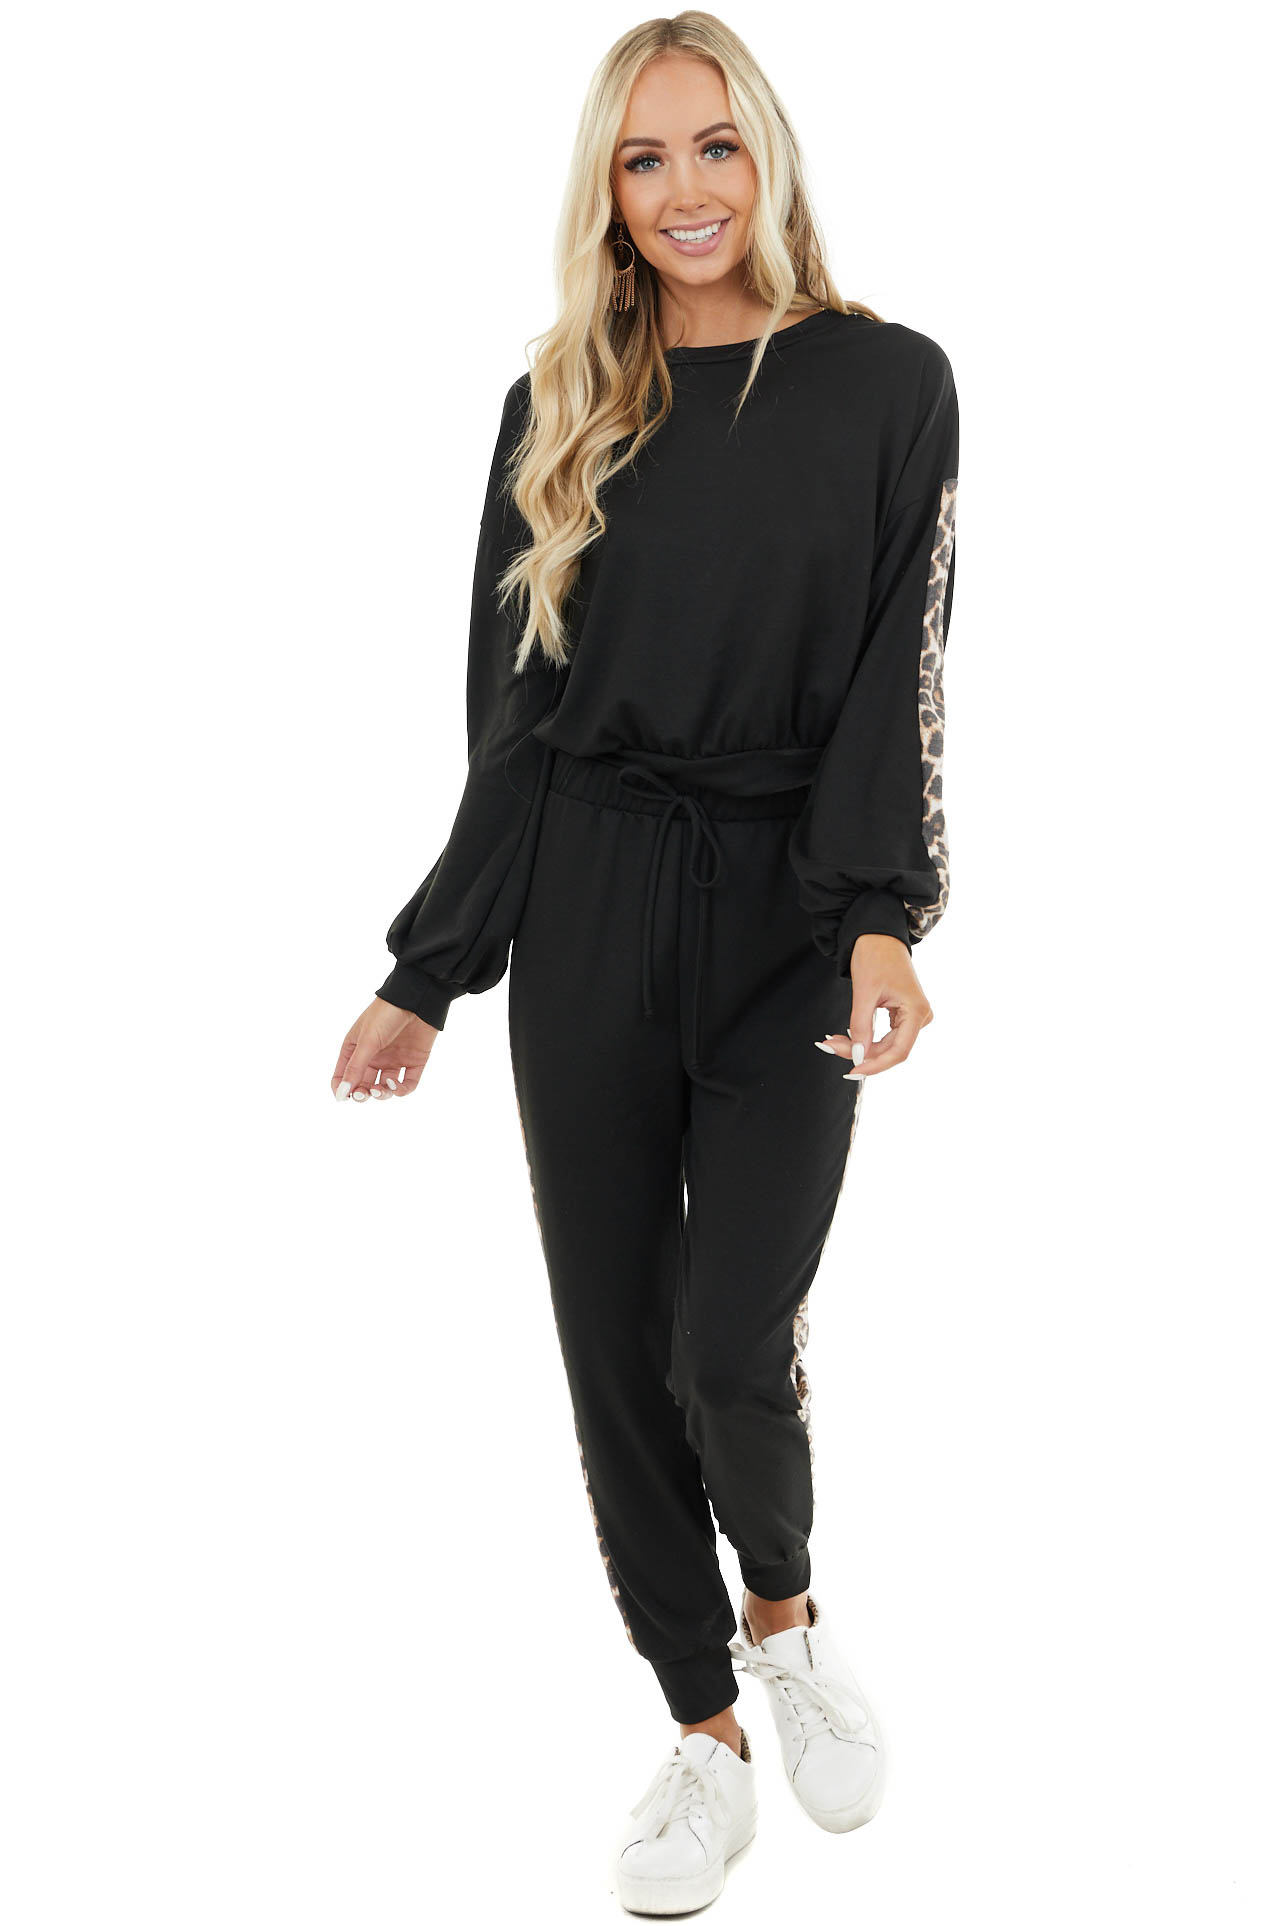 Black Crop Top and Jogger Set with Leopard Print Contrast